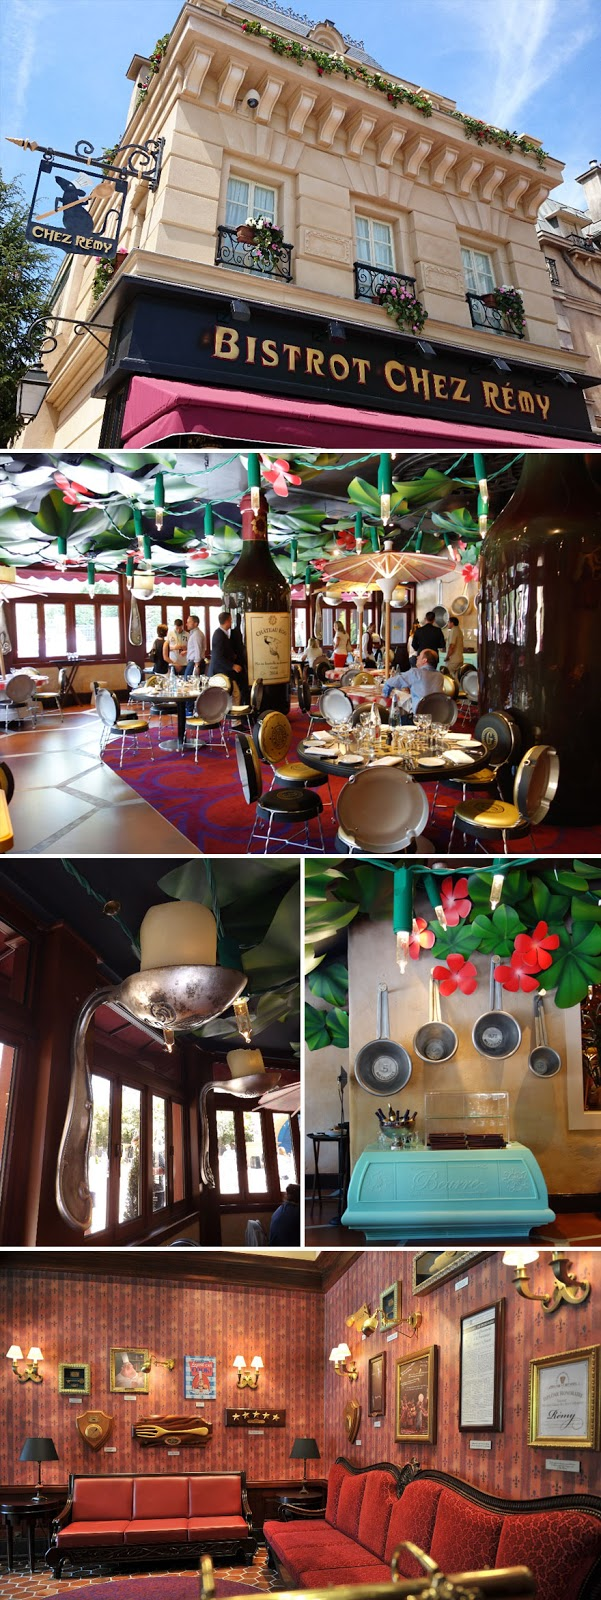 35 Of The World's Most Amazing Restaurants To Eat In Before You Die - Ratatouille Themed Restaurant, Bistrot Chez Rémy, Disneyland Paris, France